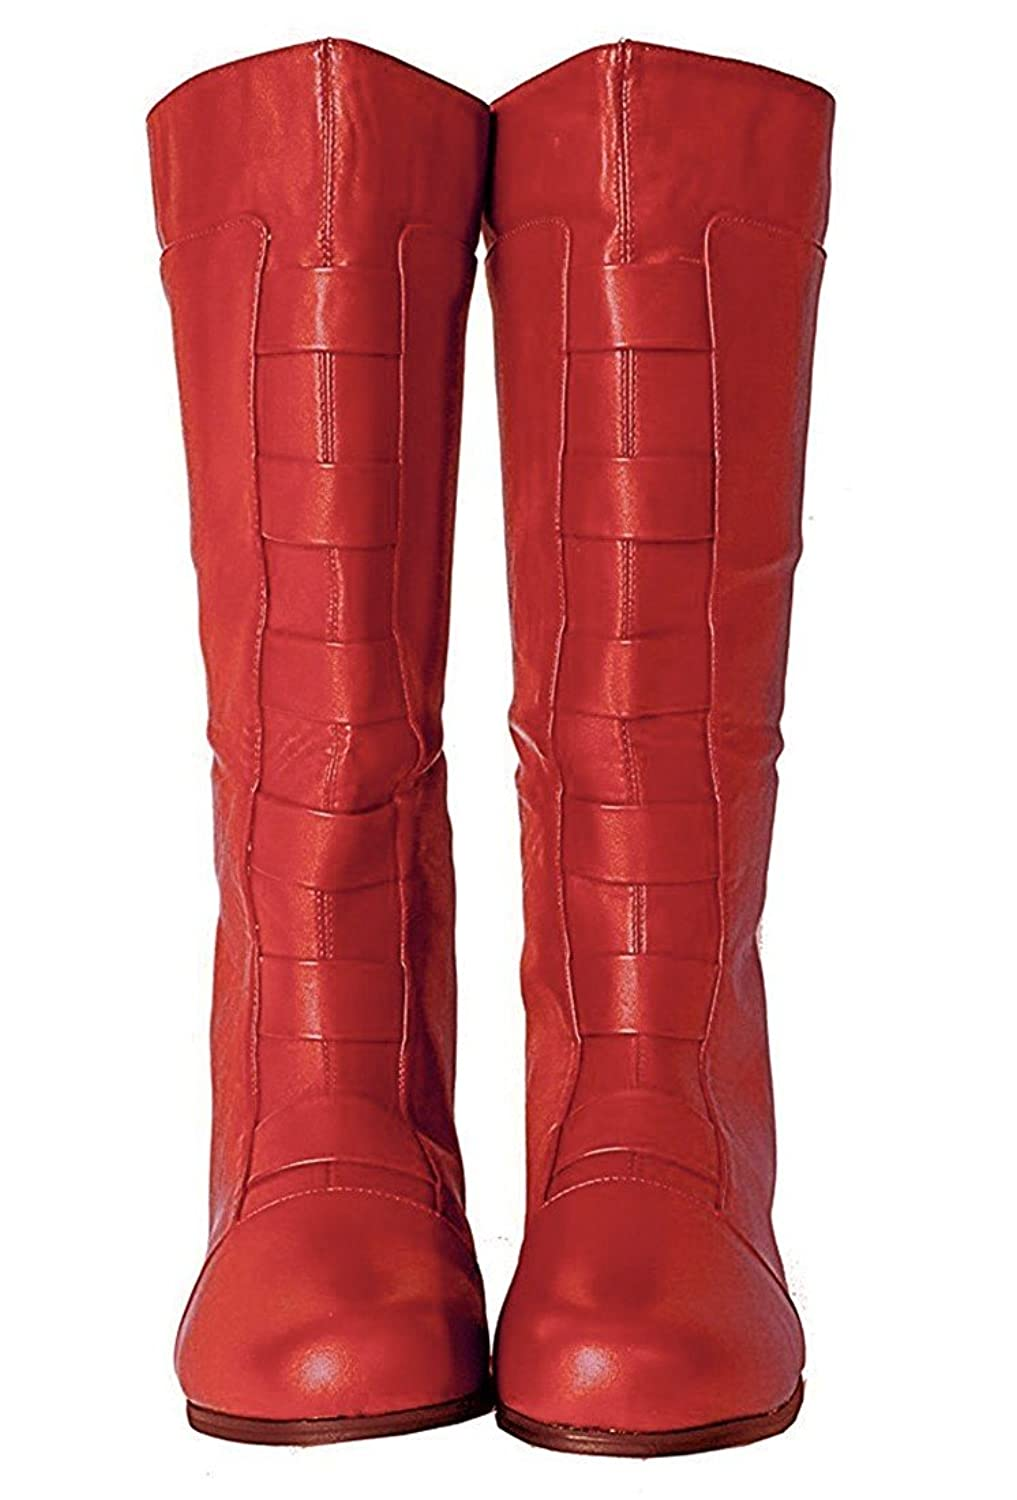 Men's Captain America Avengers Red Faux Leather Boots - DeluxeAdultCostumes.com